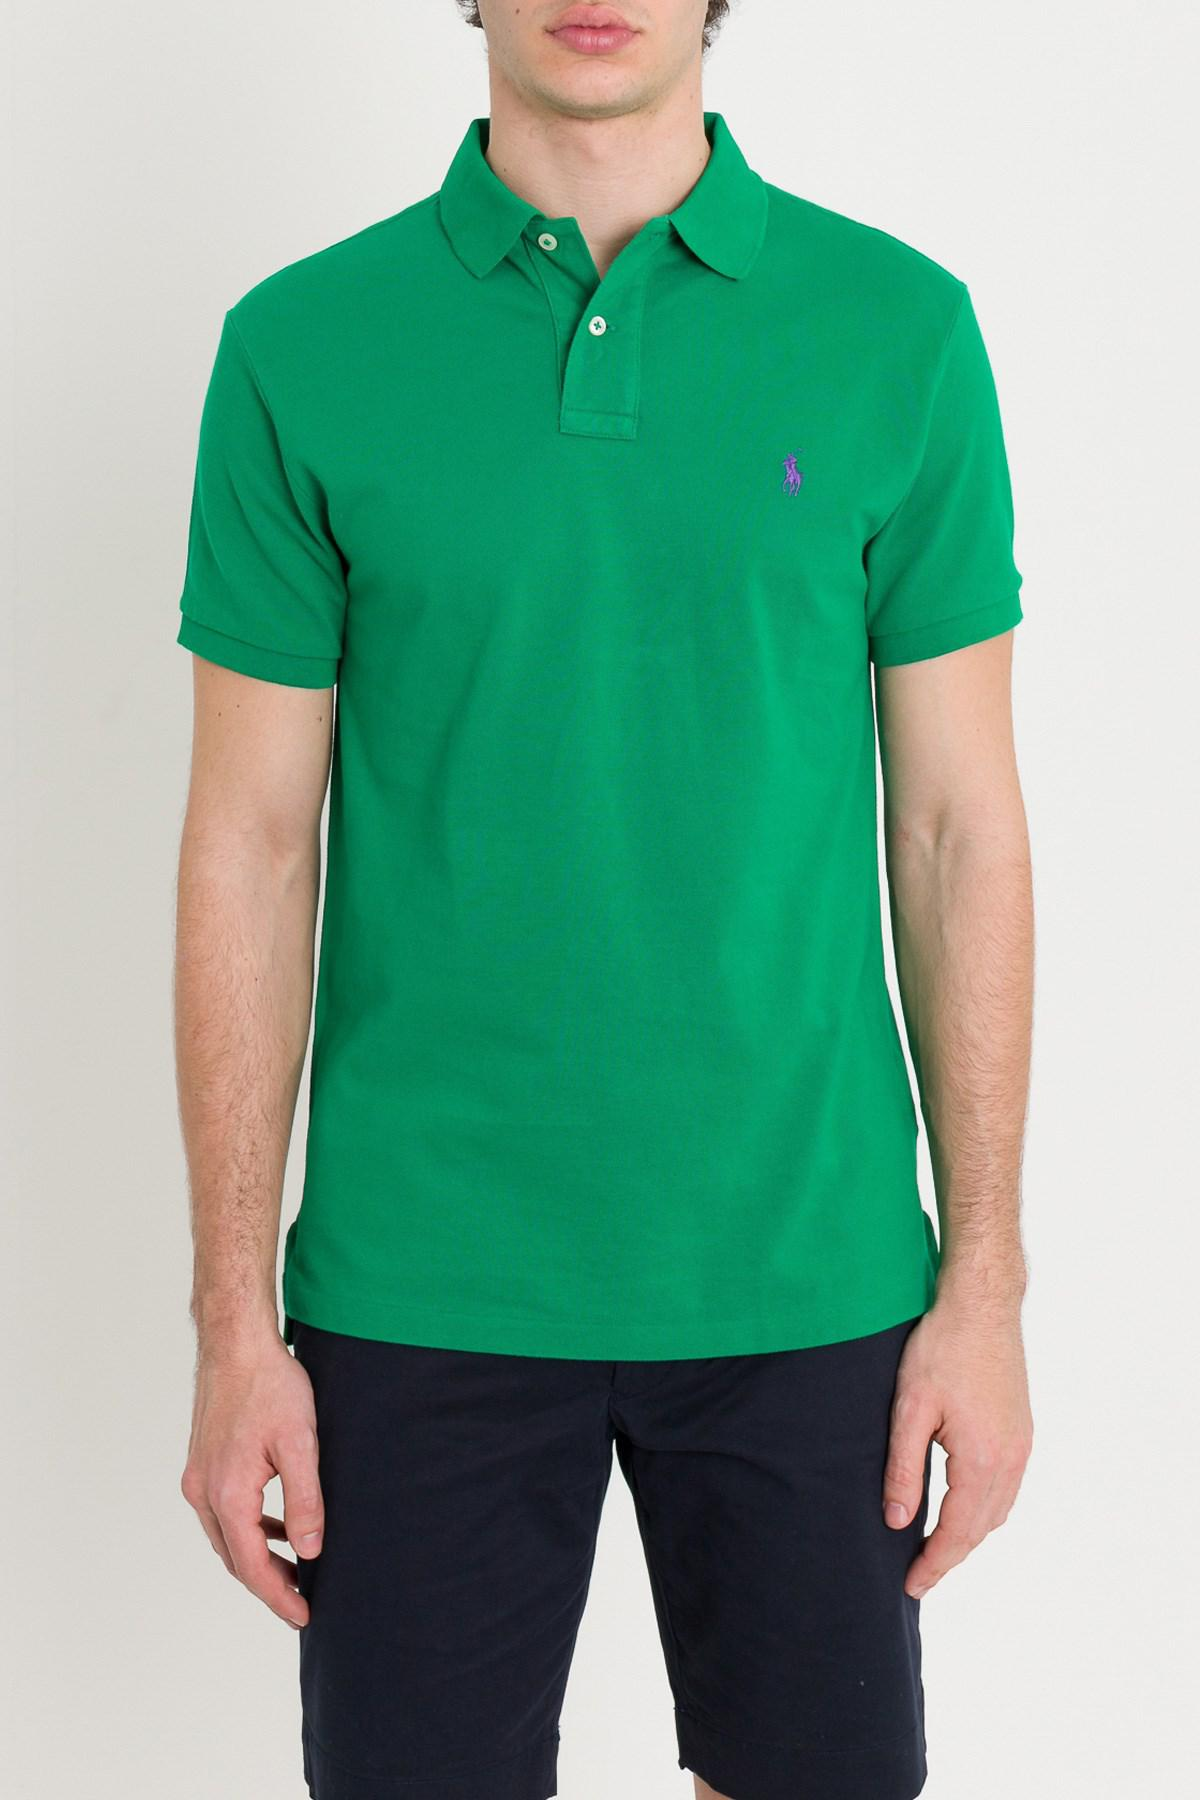 ff89c8ad117 Lyst - Polo Ralph Lauren Polo Shirt in Green for Men